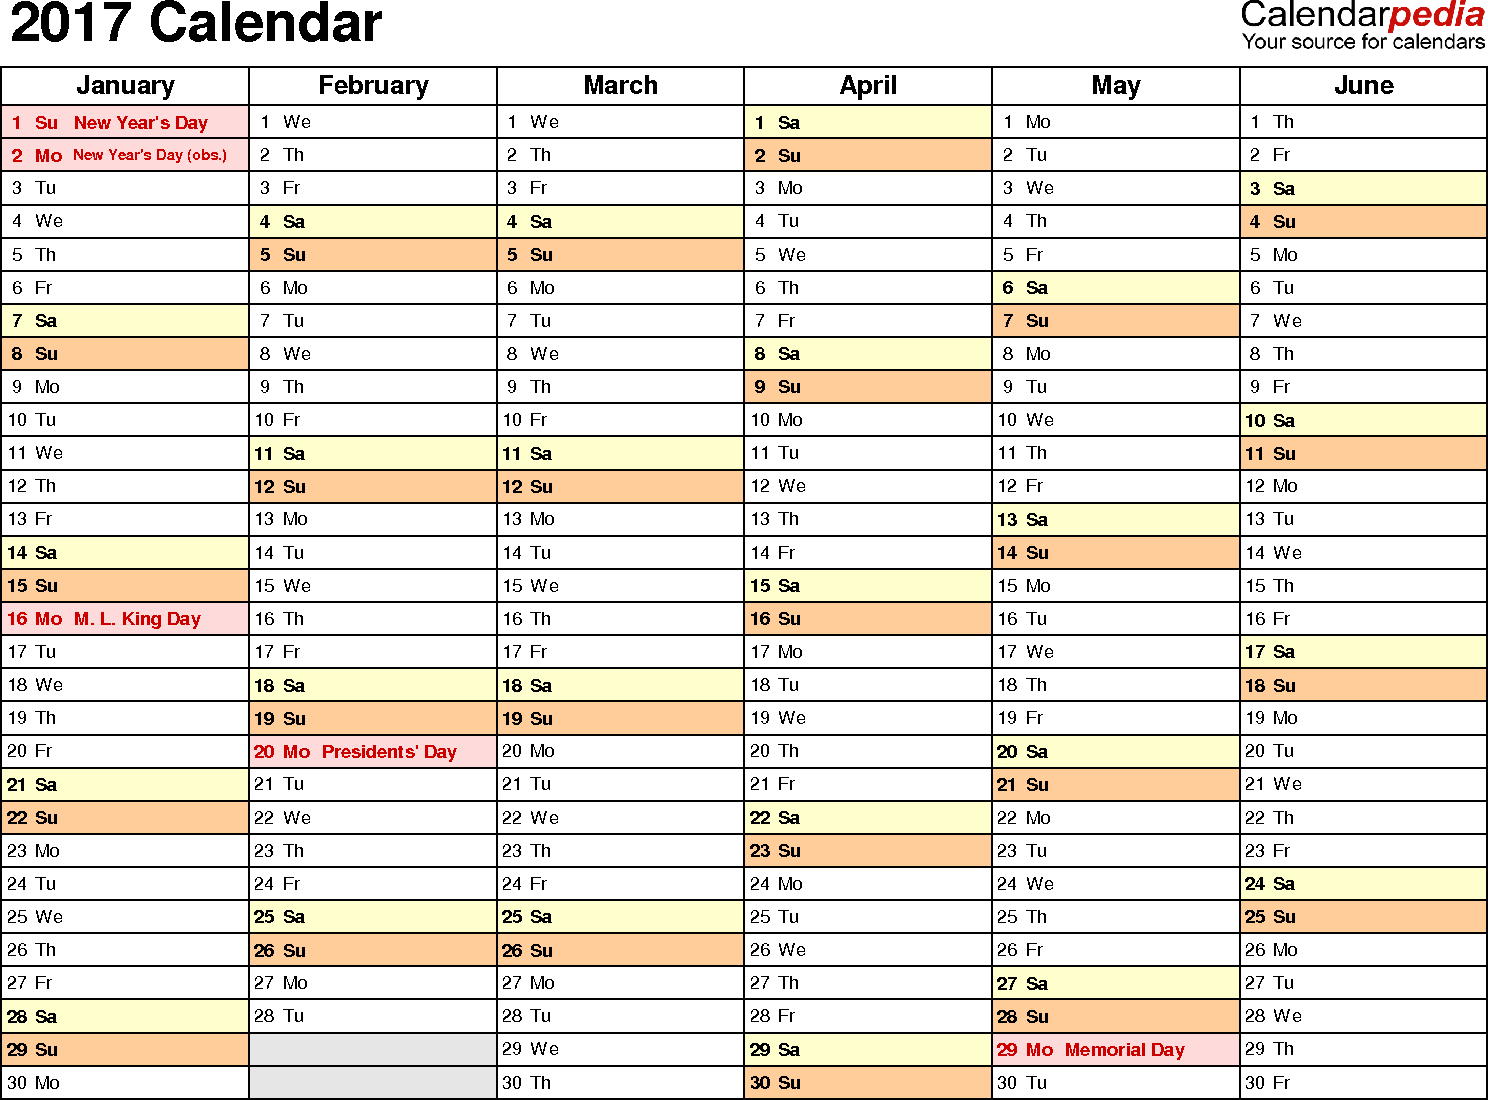 Ediblewildsus  Picturesque  Calendar  Download  Free Printable Excel Templates Xls With Luxury Template   Calendar For Excel Months Horizontally  Pages Landscape Orientation With Easy On The Eye Ms Excel Value Error Also Len Function In Excel In Addition Excel Vba Calculate And Ms Excel Password Remover Free Download As Well As Finding Median In Excel Additionally Rank Excel  From Calendarpediacom With Ediblewildsus  Luxury  Calendar  Download  Free Printable Excel Templates Xls With Easy On The Eye Template   Calendar For Excel Months Horizontally  Pages Landscape Orientation And Picturesque Ms Excel Value Error Also Len Function In Excel In Addition Excel Vba Calculate From Calendarpediacom